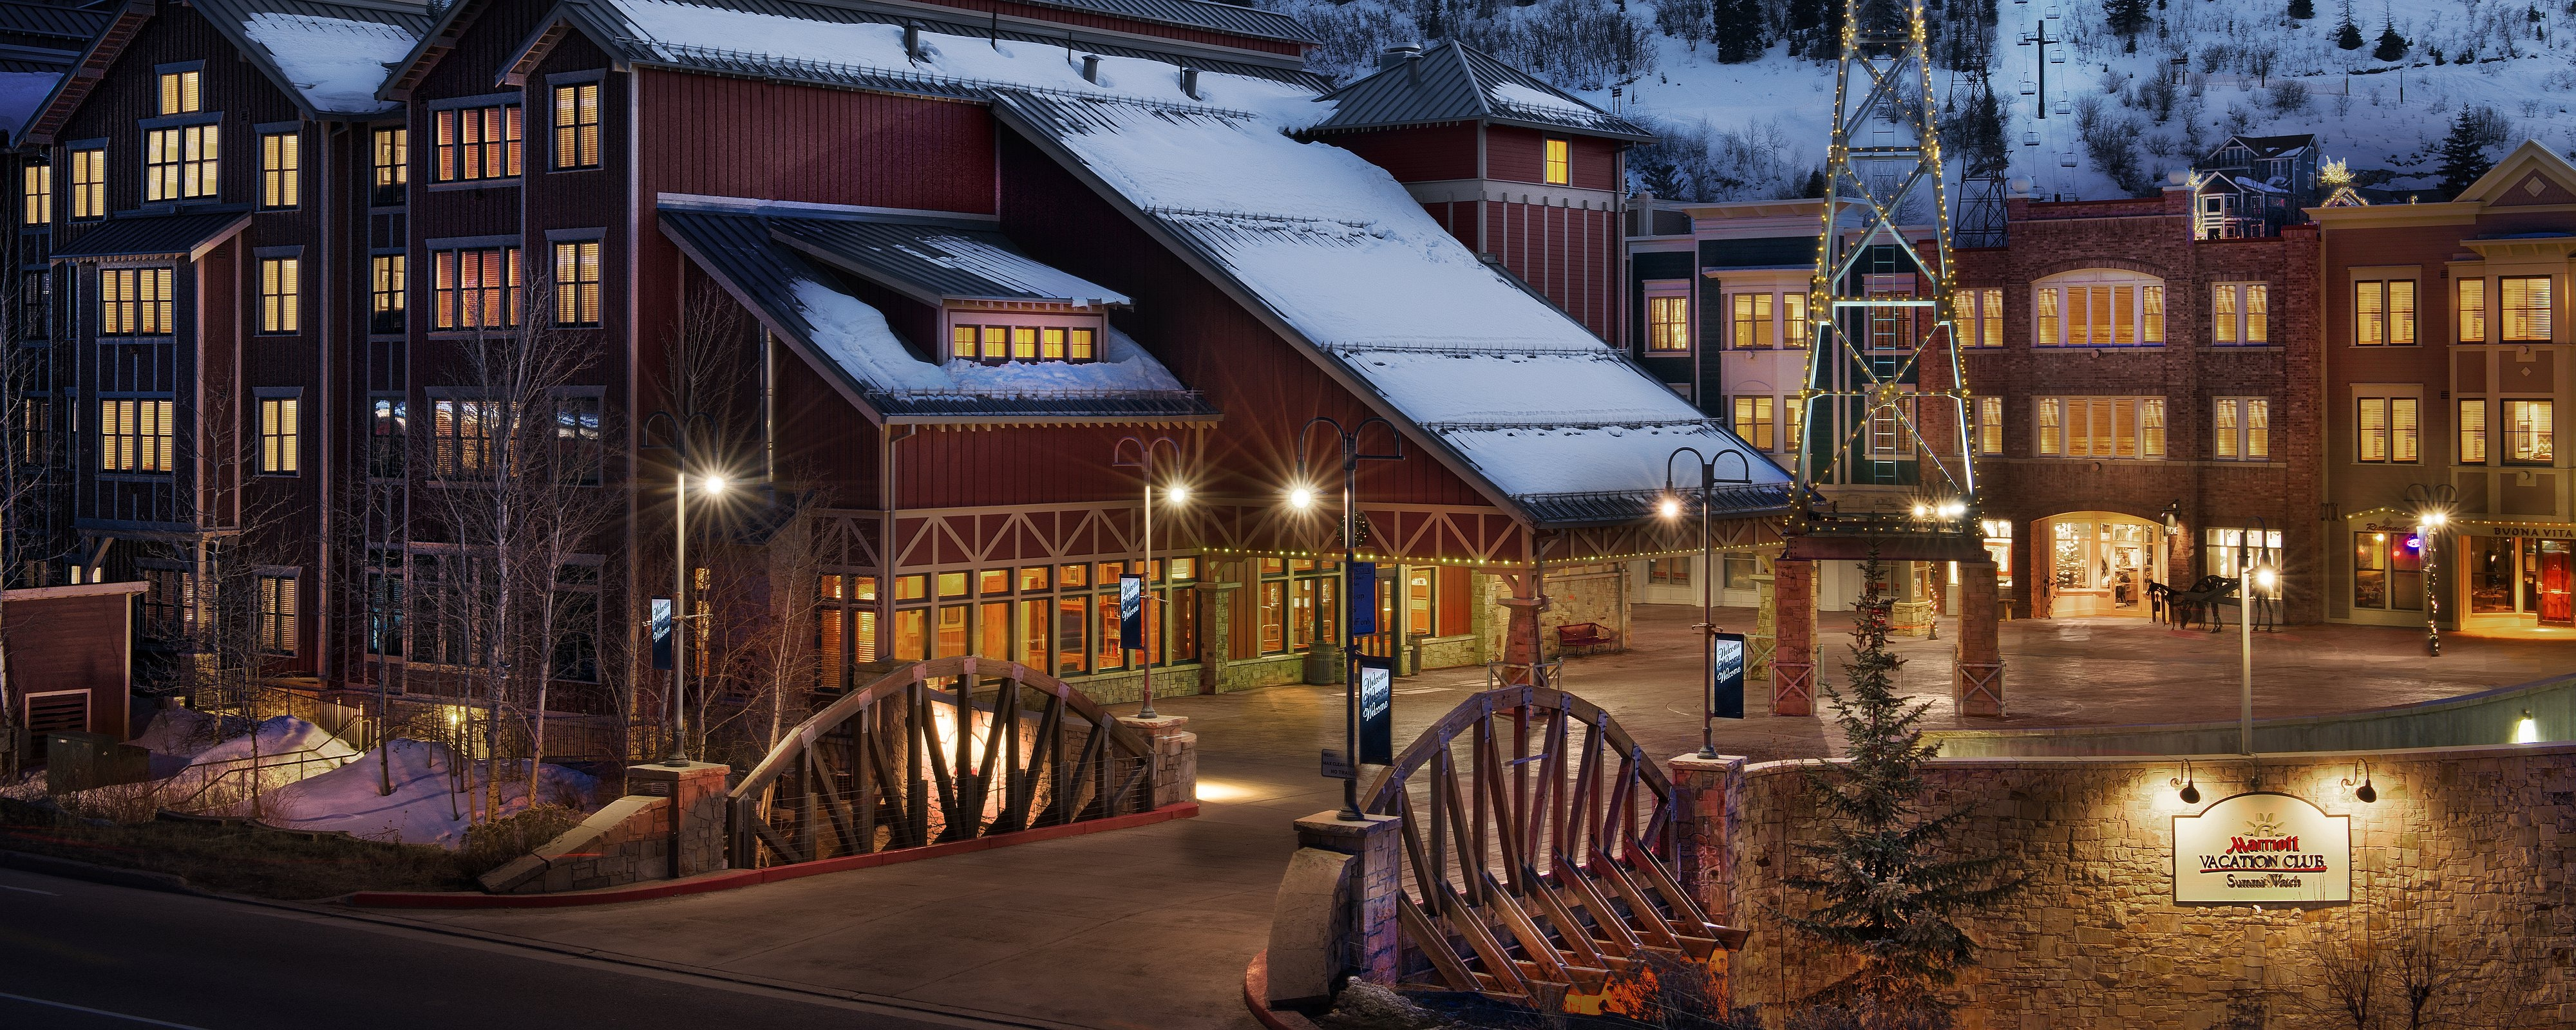 park city, utah luxury ski resort | marriott's summit watch